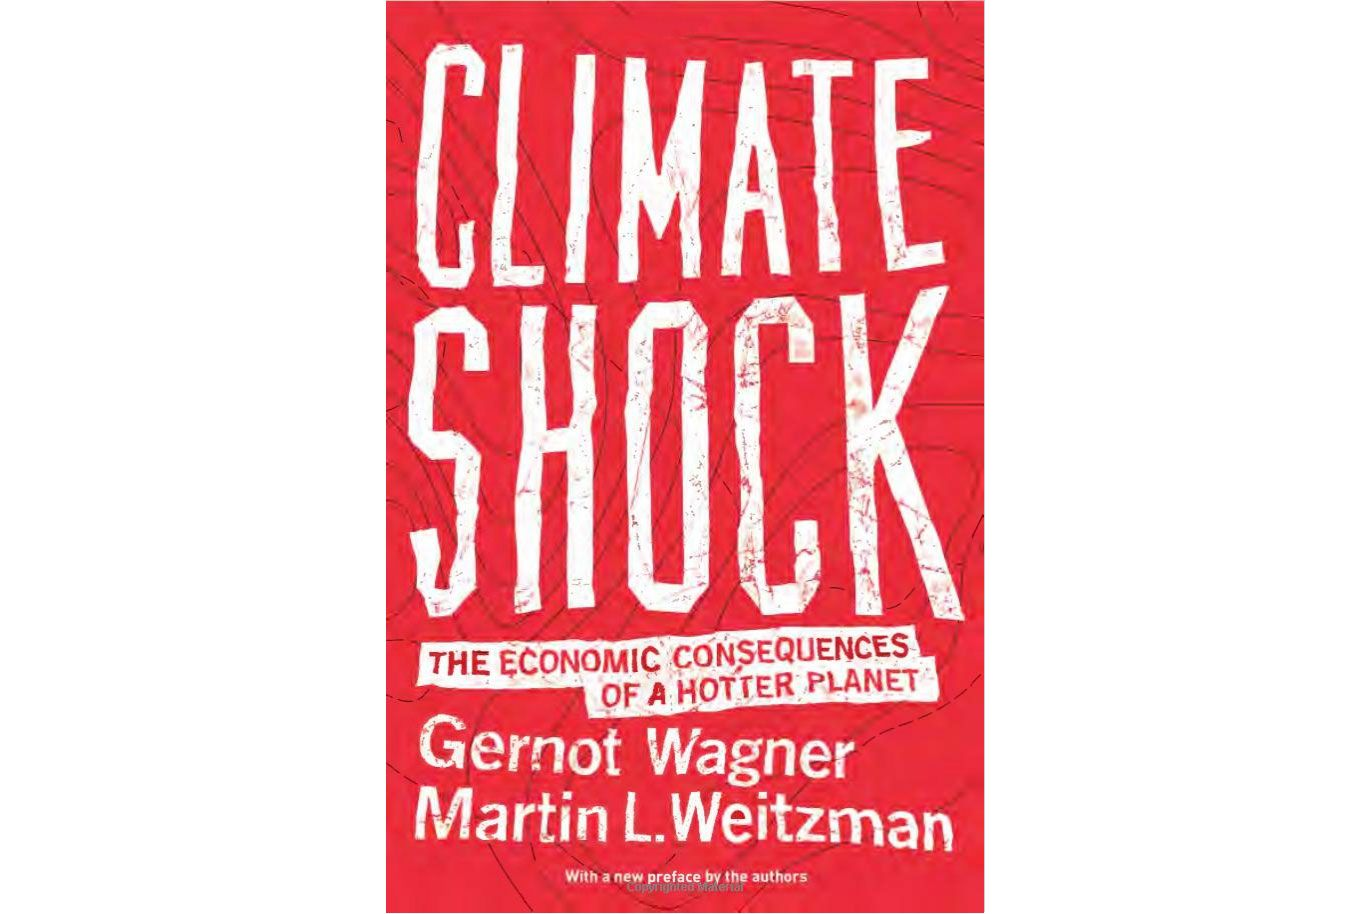 Climate Shock: The Economic Consequences of a Hotter Planet by Gernot Wagner